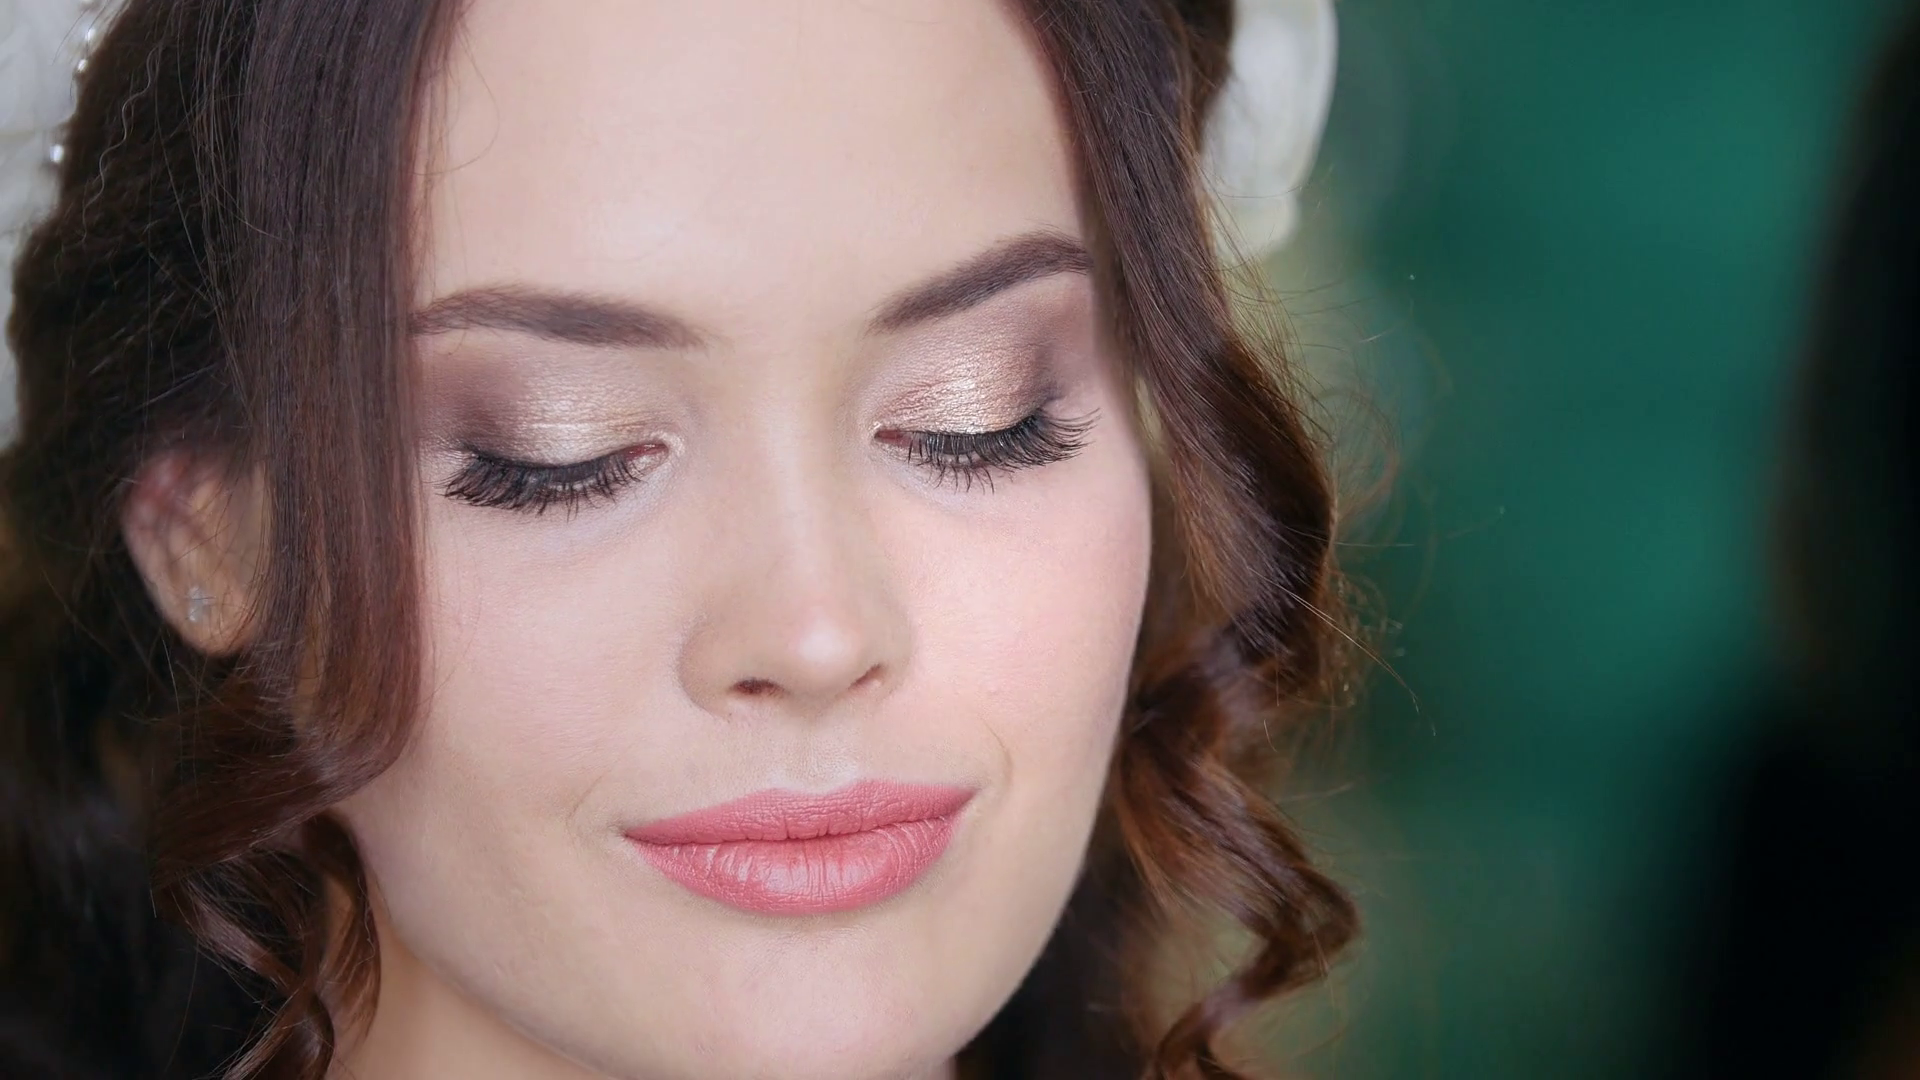 Beautiful Brunette Model With Fashion Wedding Makeup And Hairstyle Stock Video Footage Storyblocks